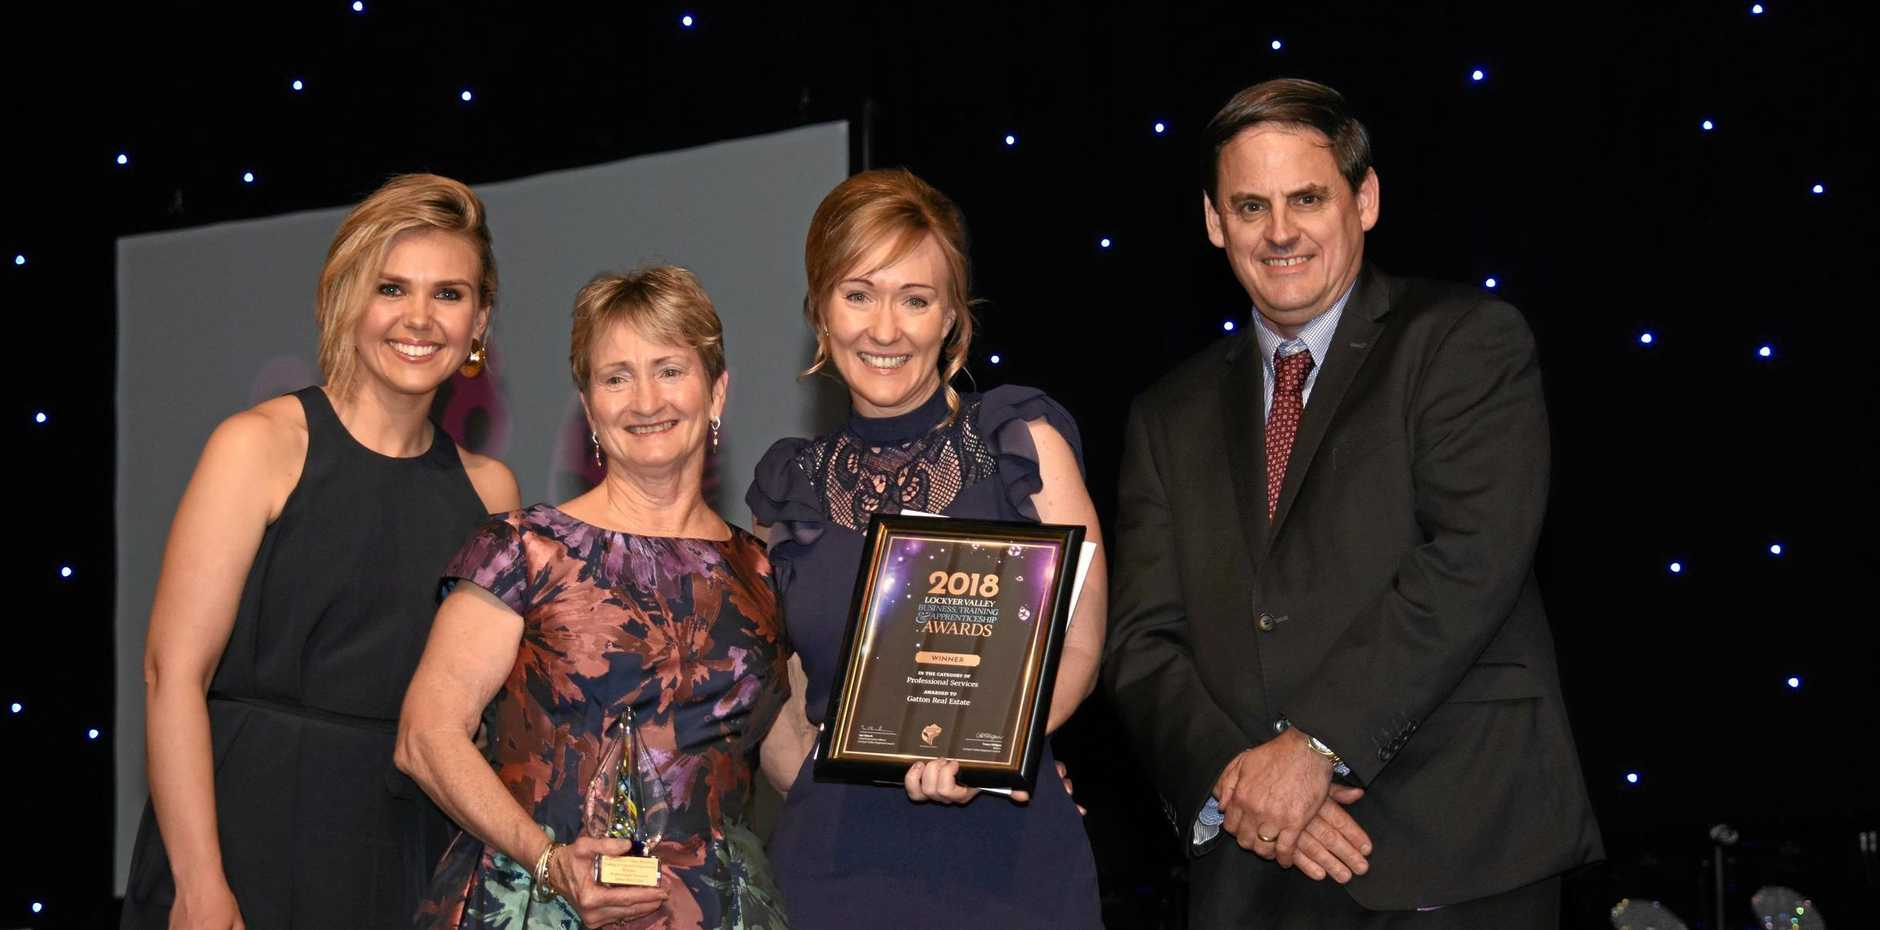 BIG WINNERS: Edwina Bartholomew, Rhonda McLucas, Allison Graham and Paul Belz at the business awards.